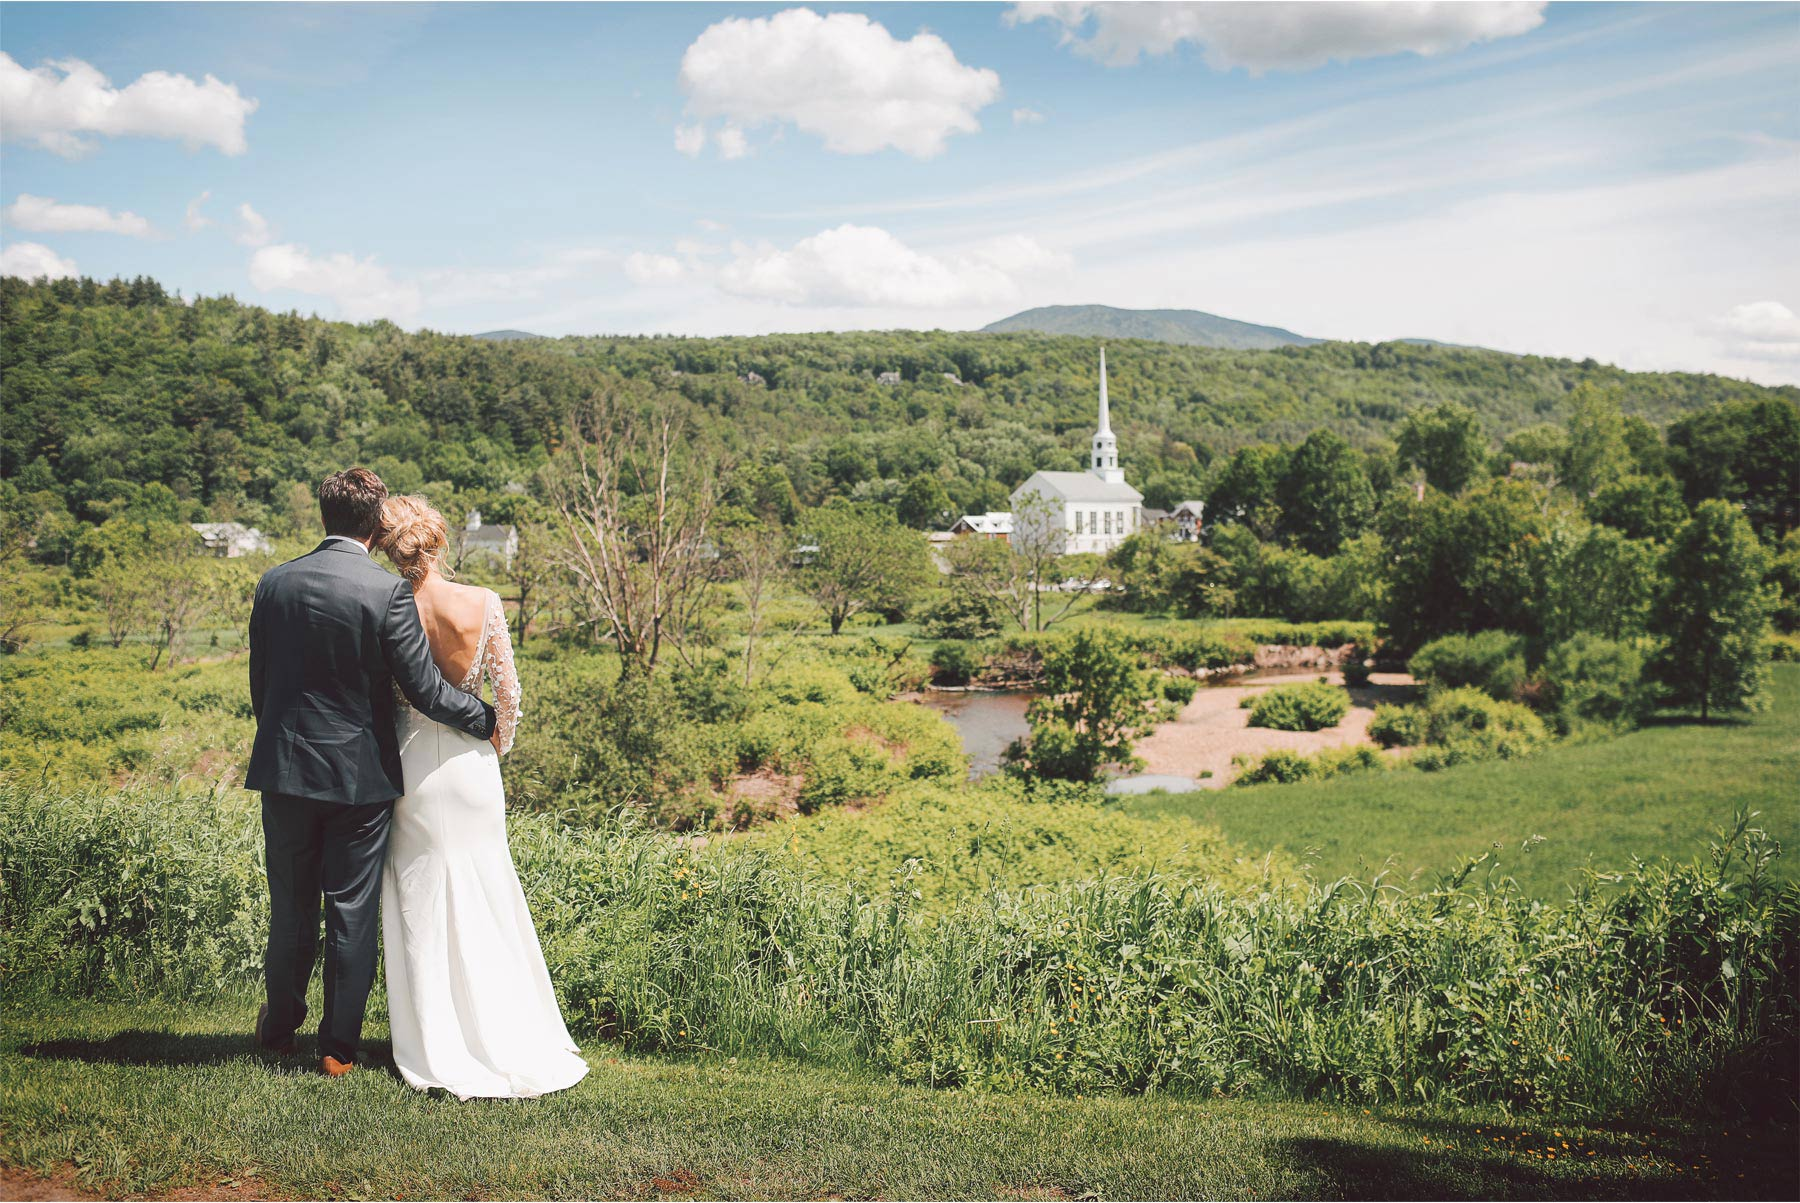 18-Stowe-Vermont-Wedding-Photography-by-Vick-Photography-Mackenzie-and-Jim.jpg